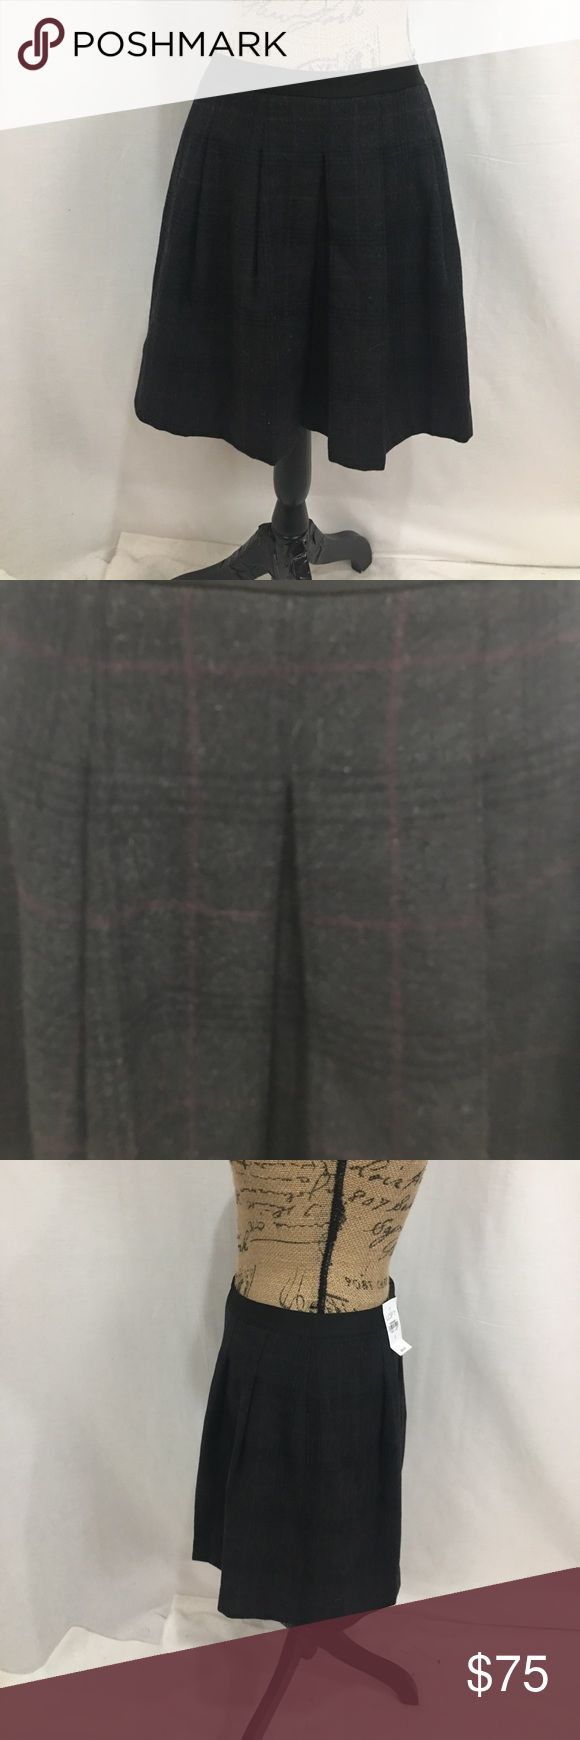 Ann Taylor LOFT wool plaid pleated skirt Grey and maroon plaid. Pleated mini skirt. Lined. Size 2. Materials as pictured. Back zipper. Measurements are approx in inches. W-15 h-free length-18.   🌹no trades 🌹discounts on bundles of 2+  🌹1000 items listed, take a peak!  🌹suggested user, posh compliant: LOFT Skirts